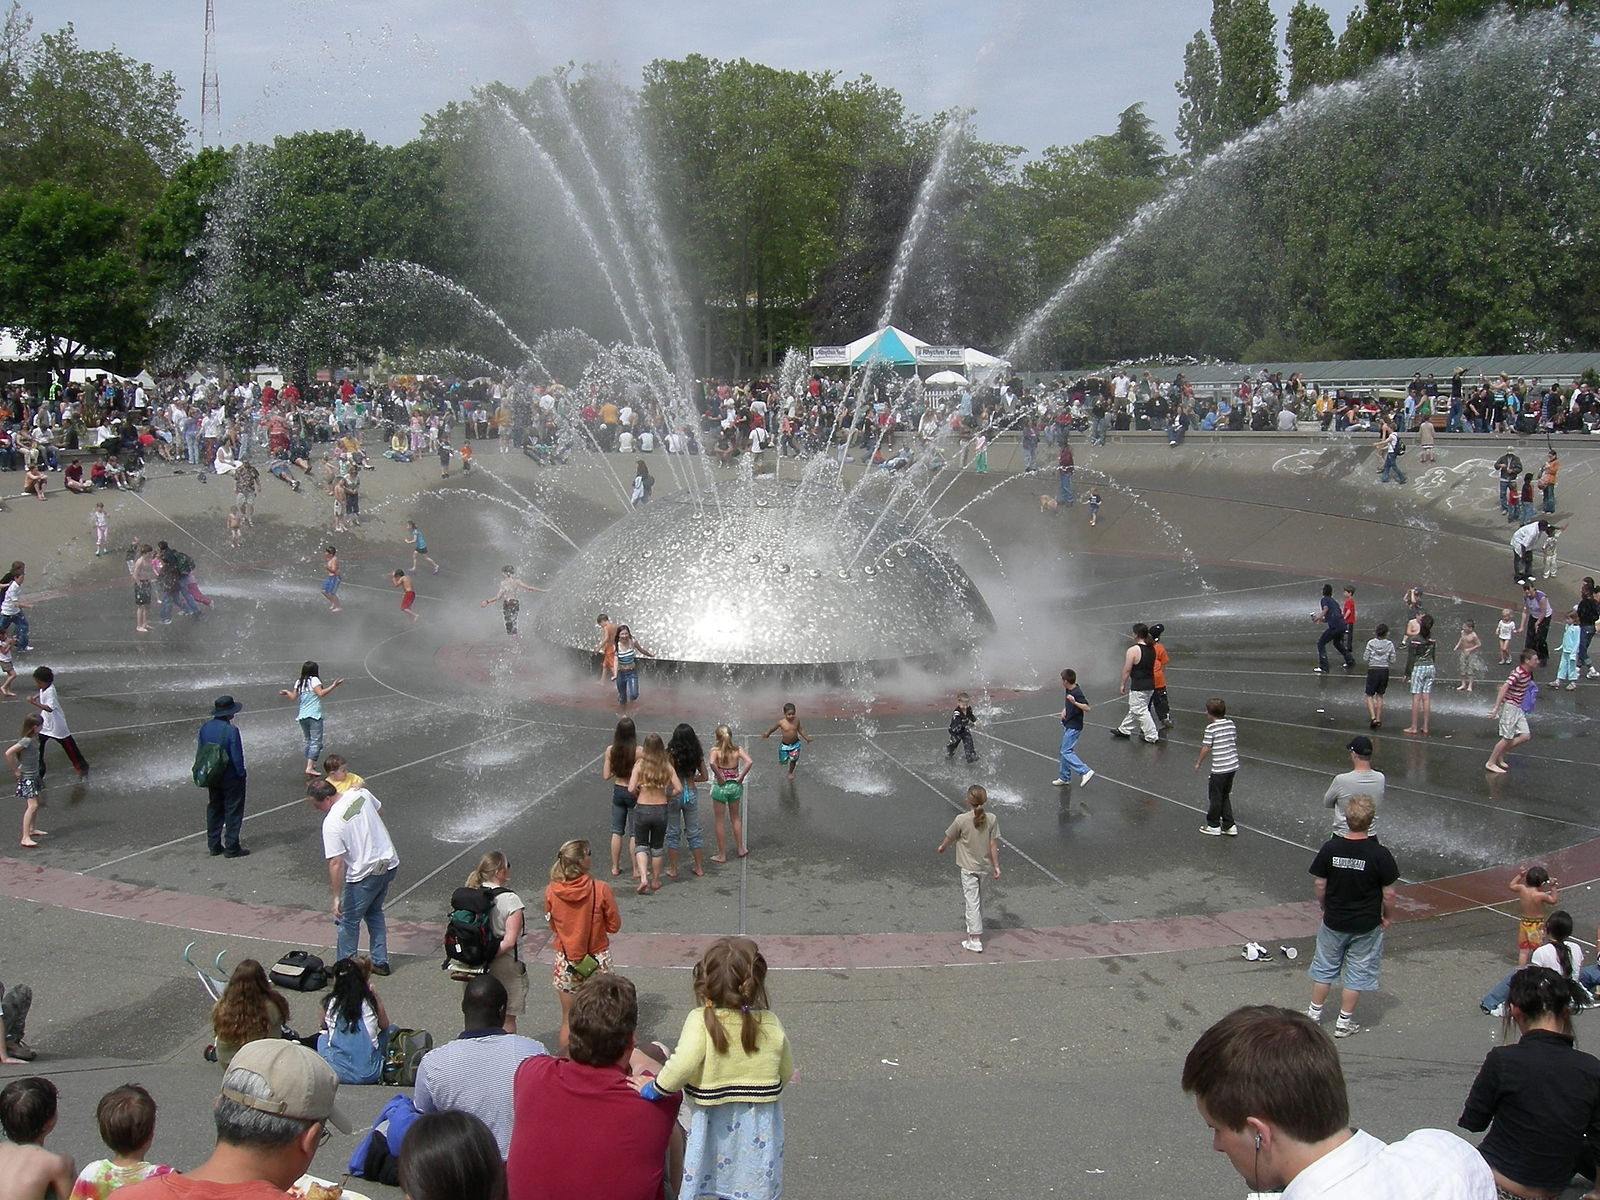 The International Fountain at Seattle Center. Image by Joe Mabel,used in terms of a  Creative Commons  Attribution-Share Alike 4.0 International license.